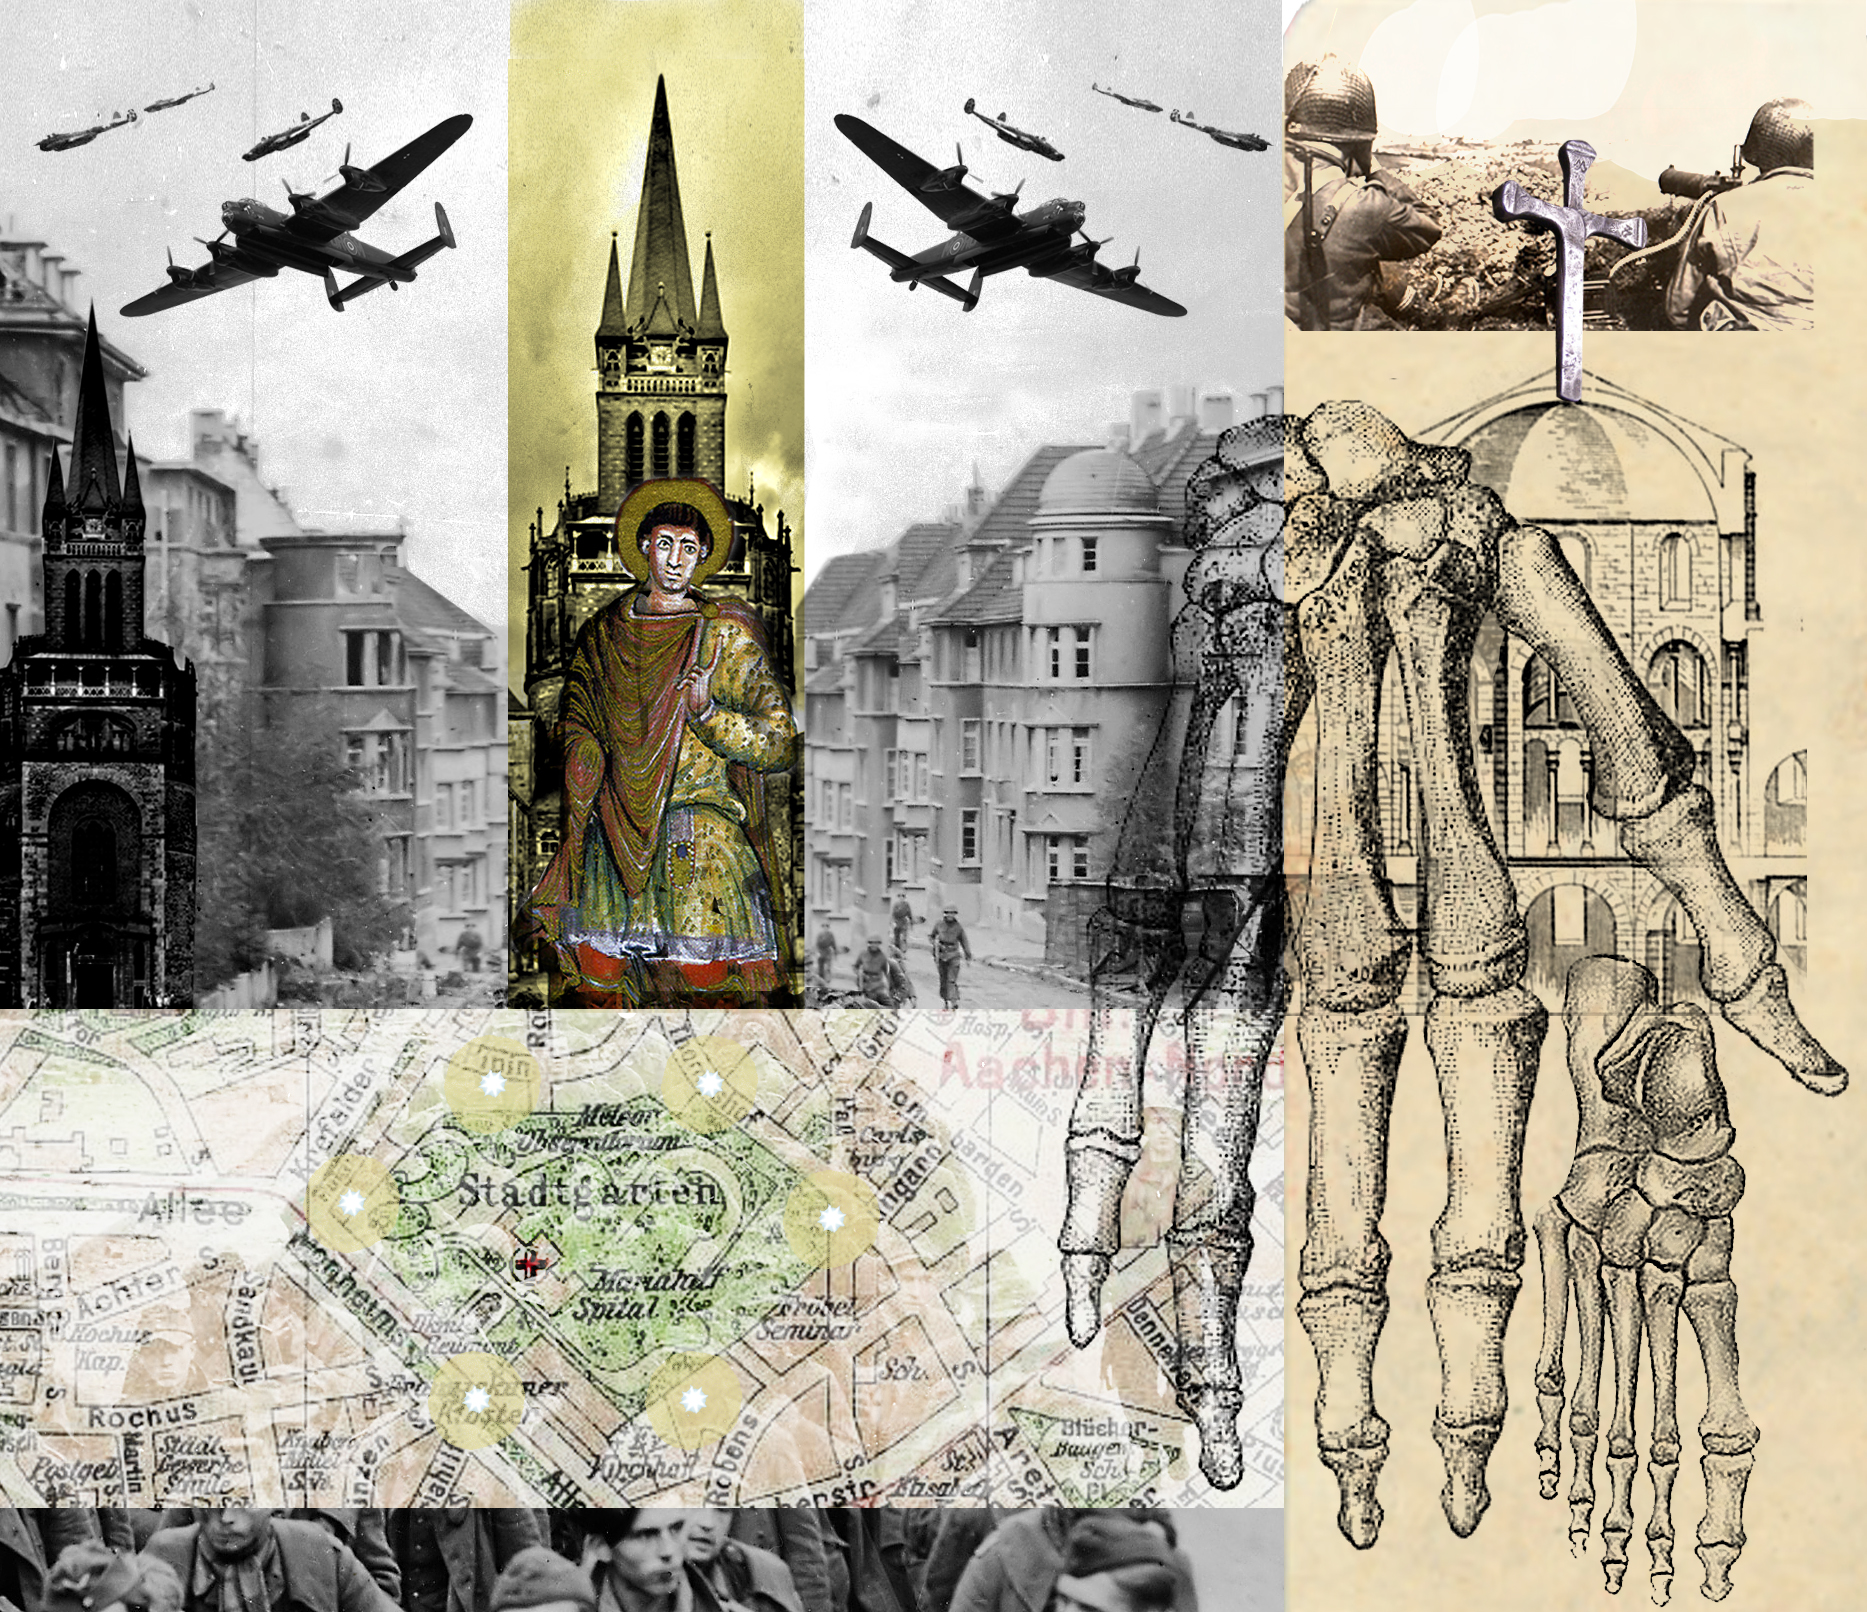 THE WARTIME SPARING OF AACHEN